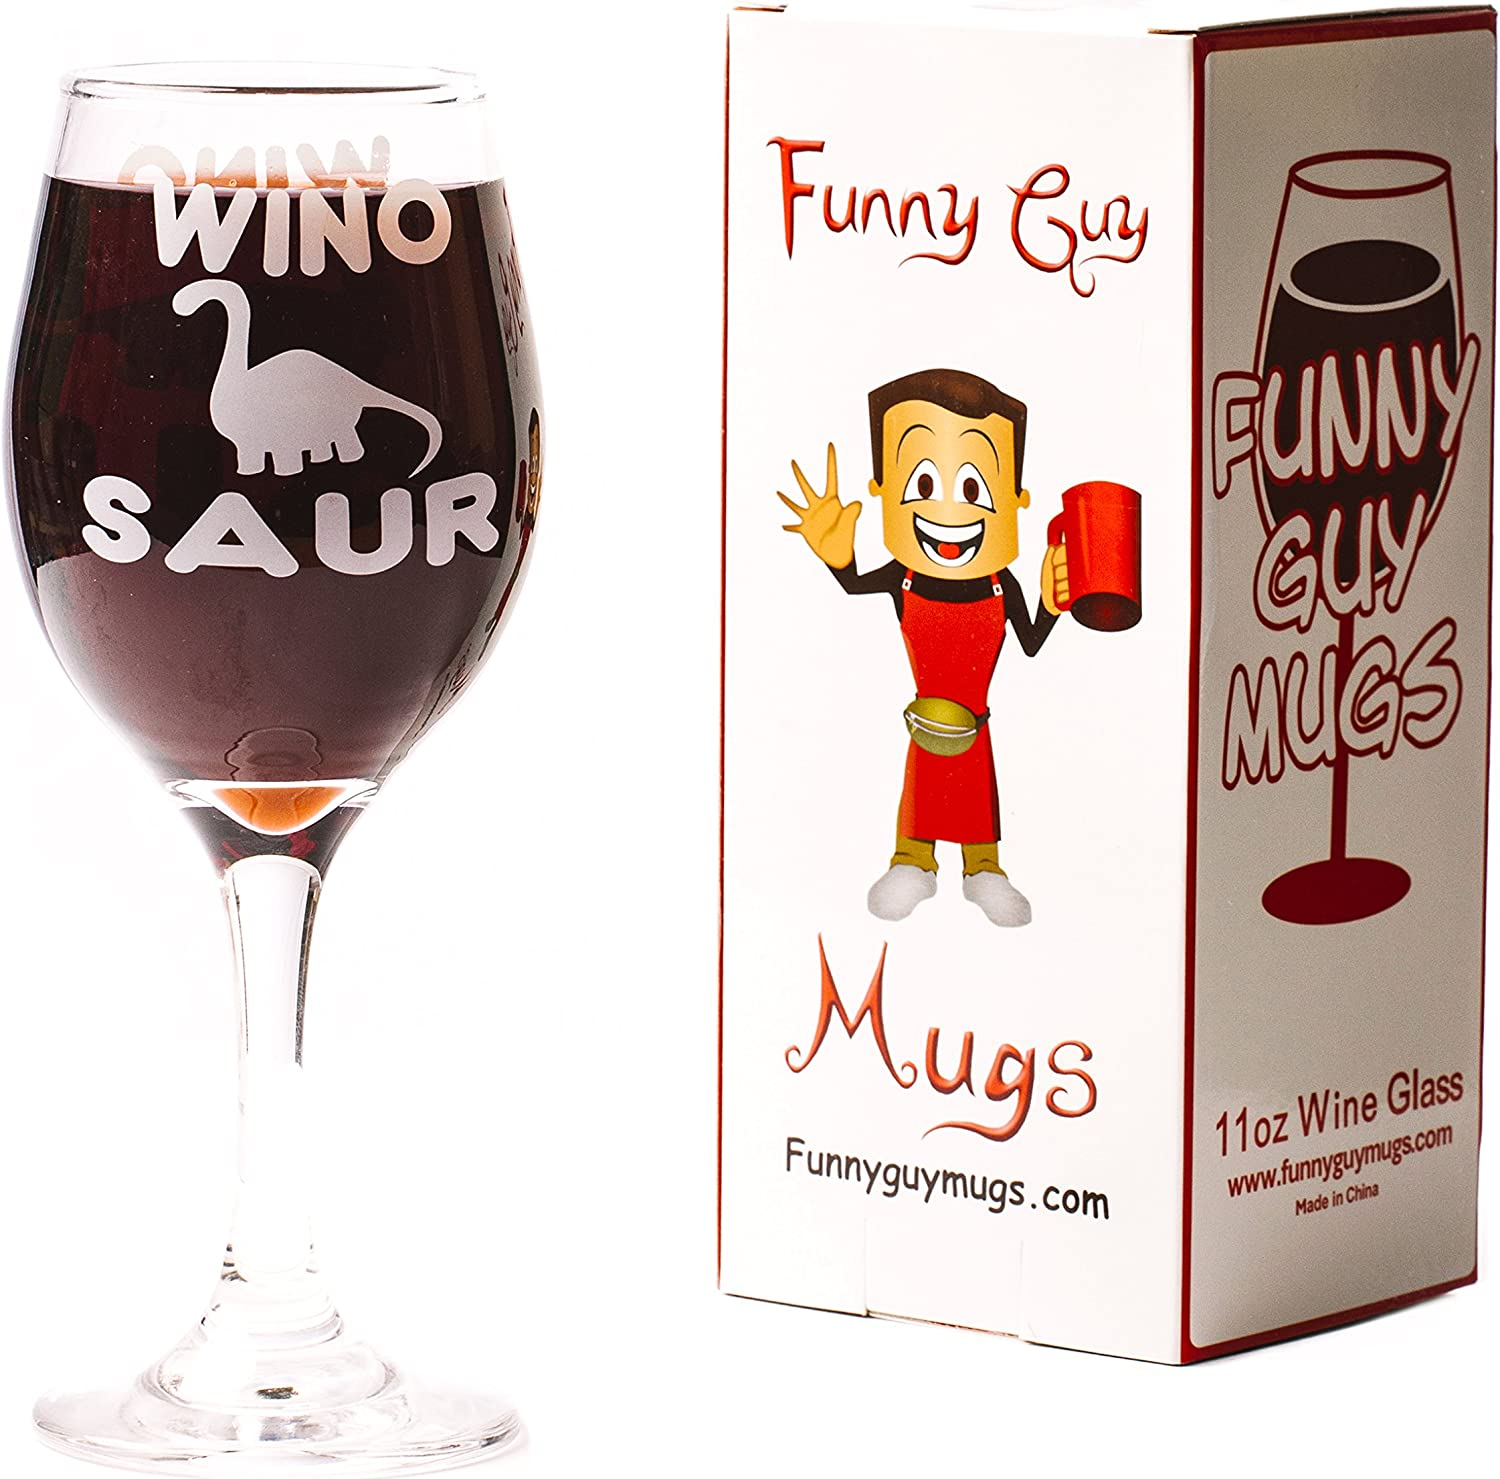 Unique Gift for Women Girlfriend Wife 11-Ounce Aunt Mom Funny Guy Mugs Wino Saur Wine Glass Sister Daughter Teacher or Coworker